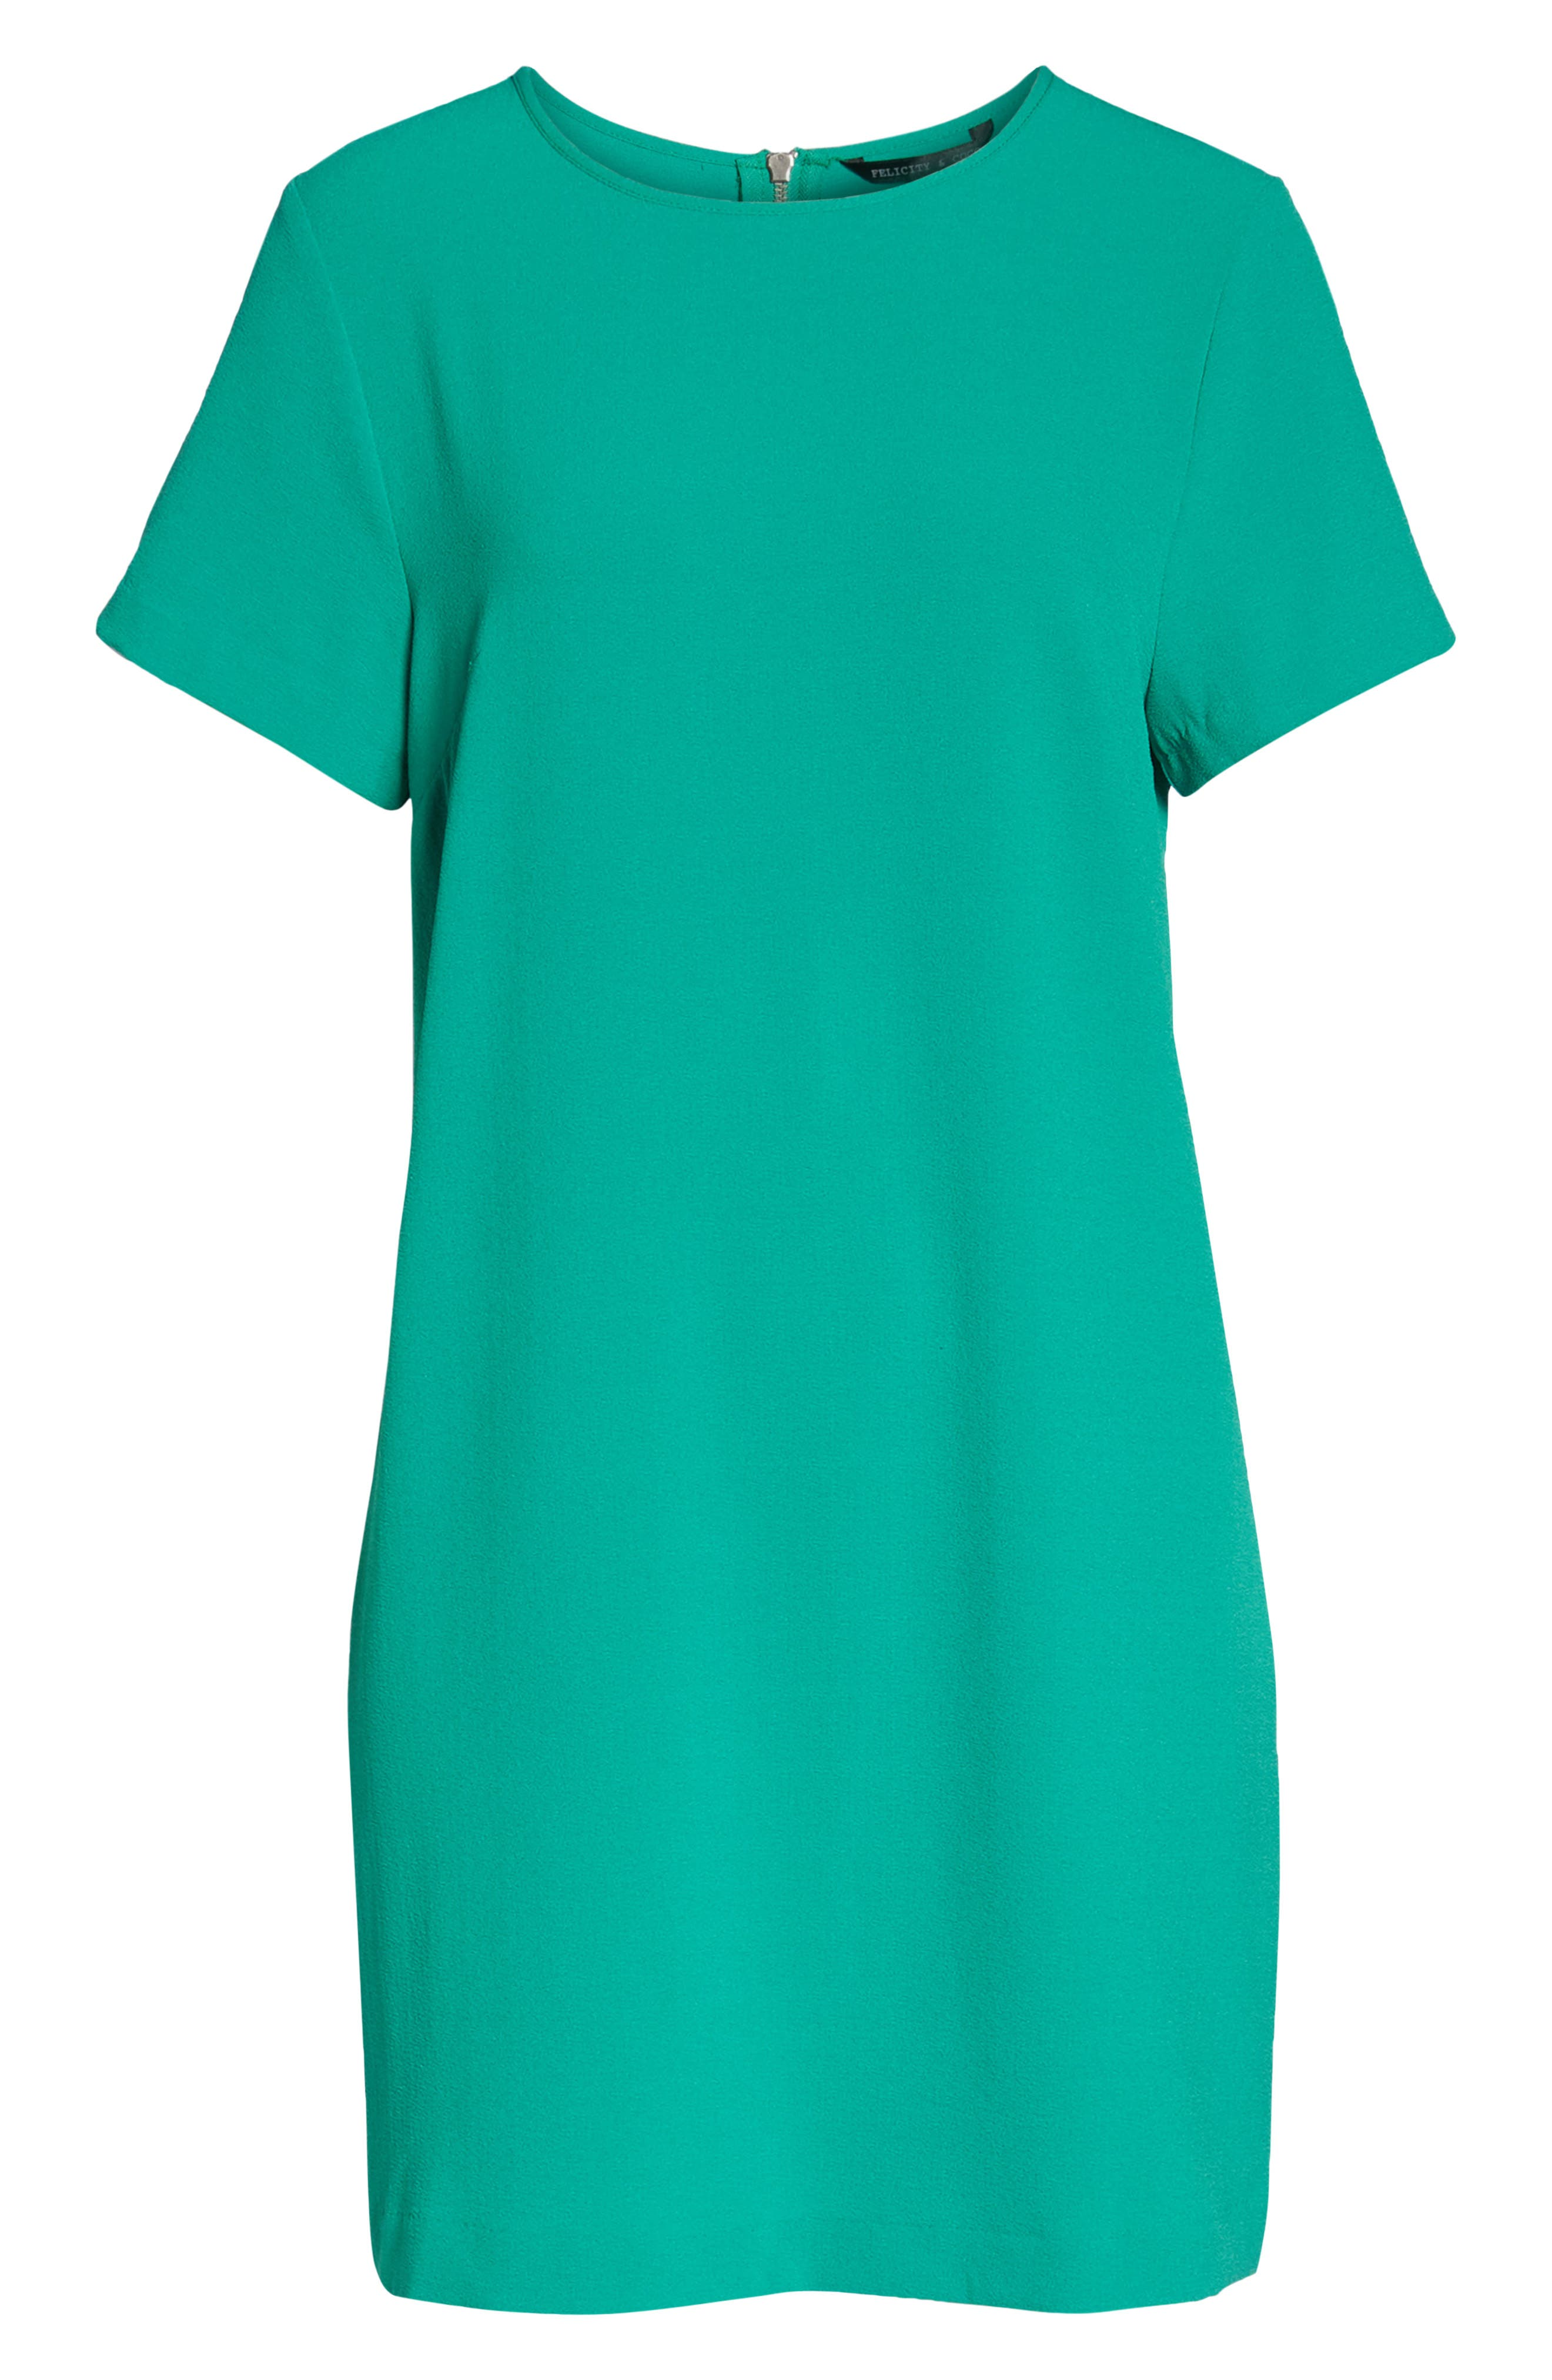 Devery Crepe Shift Dress,                             Alternate thumbnail 7, color,                             Emerald Green